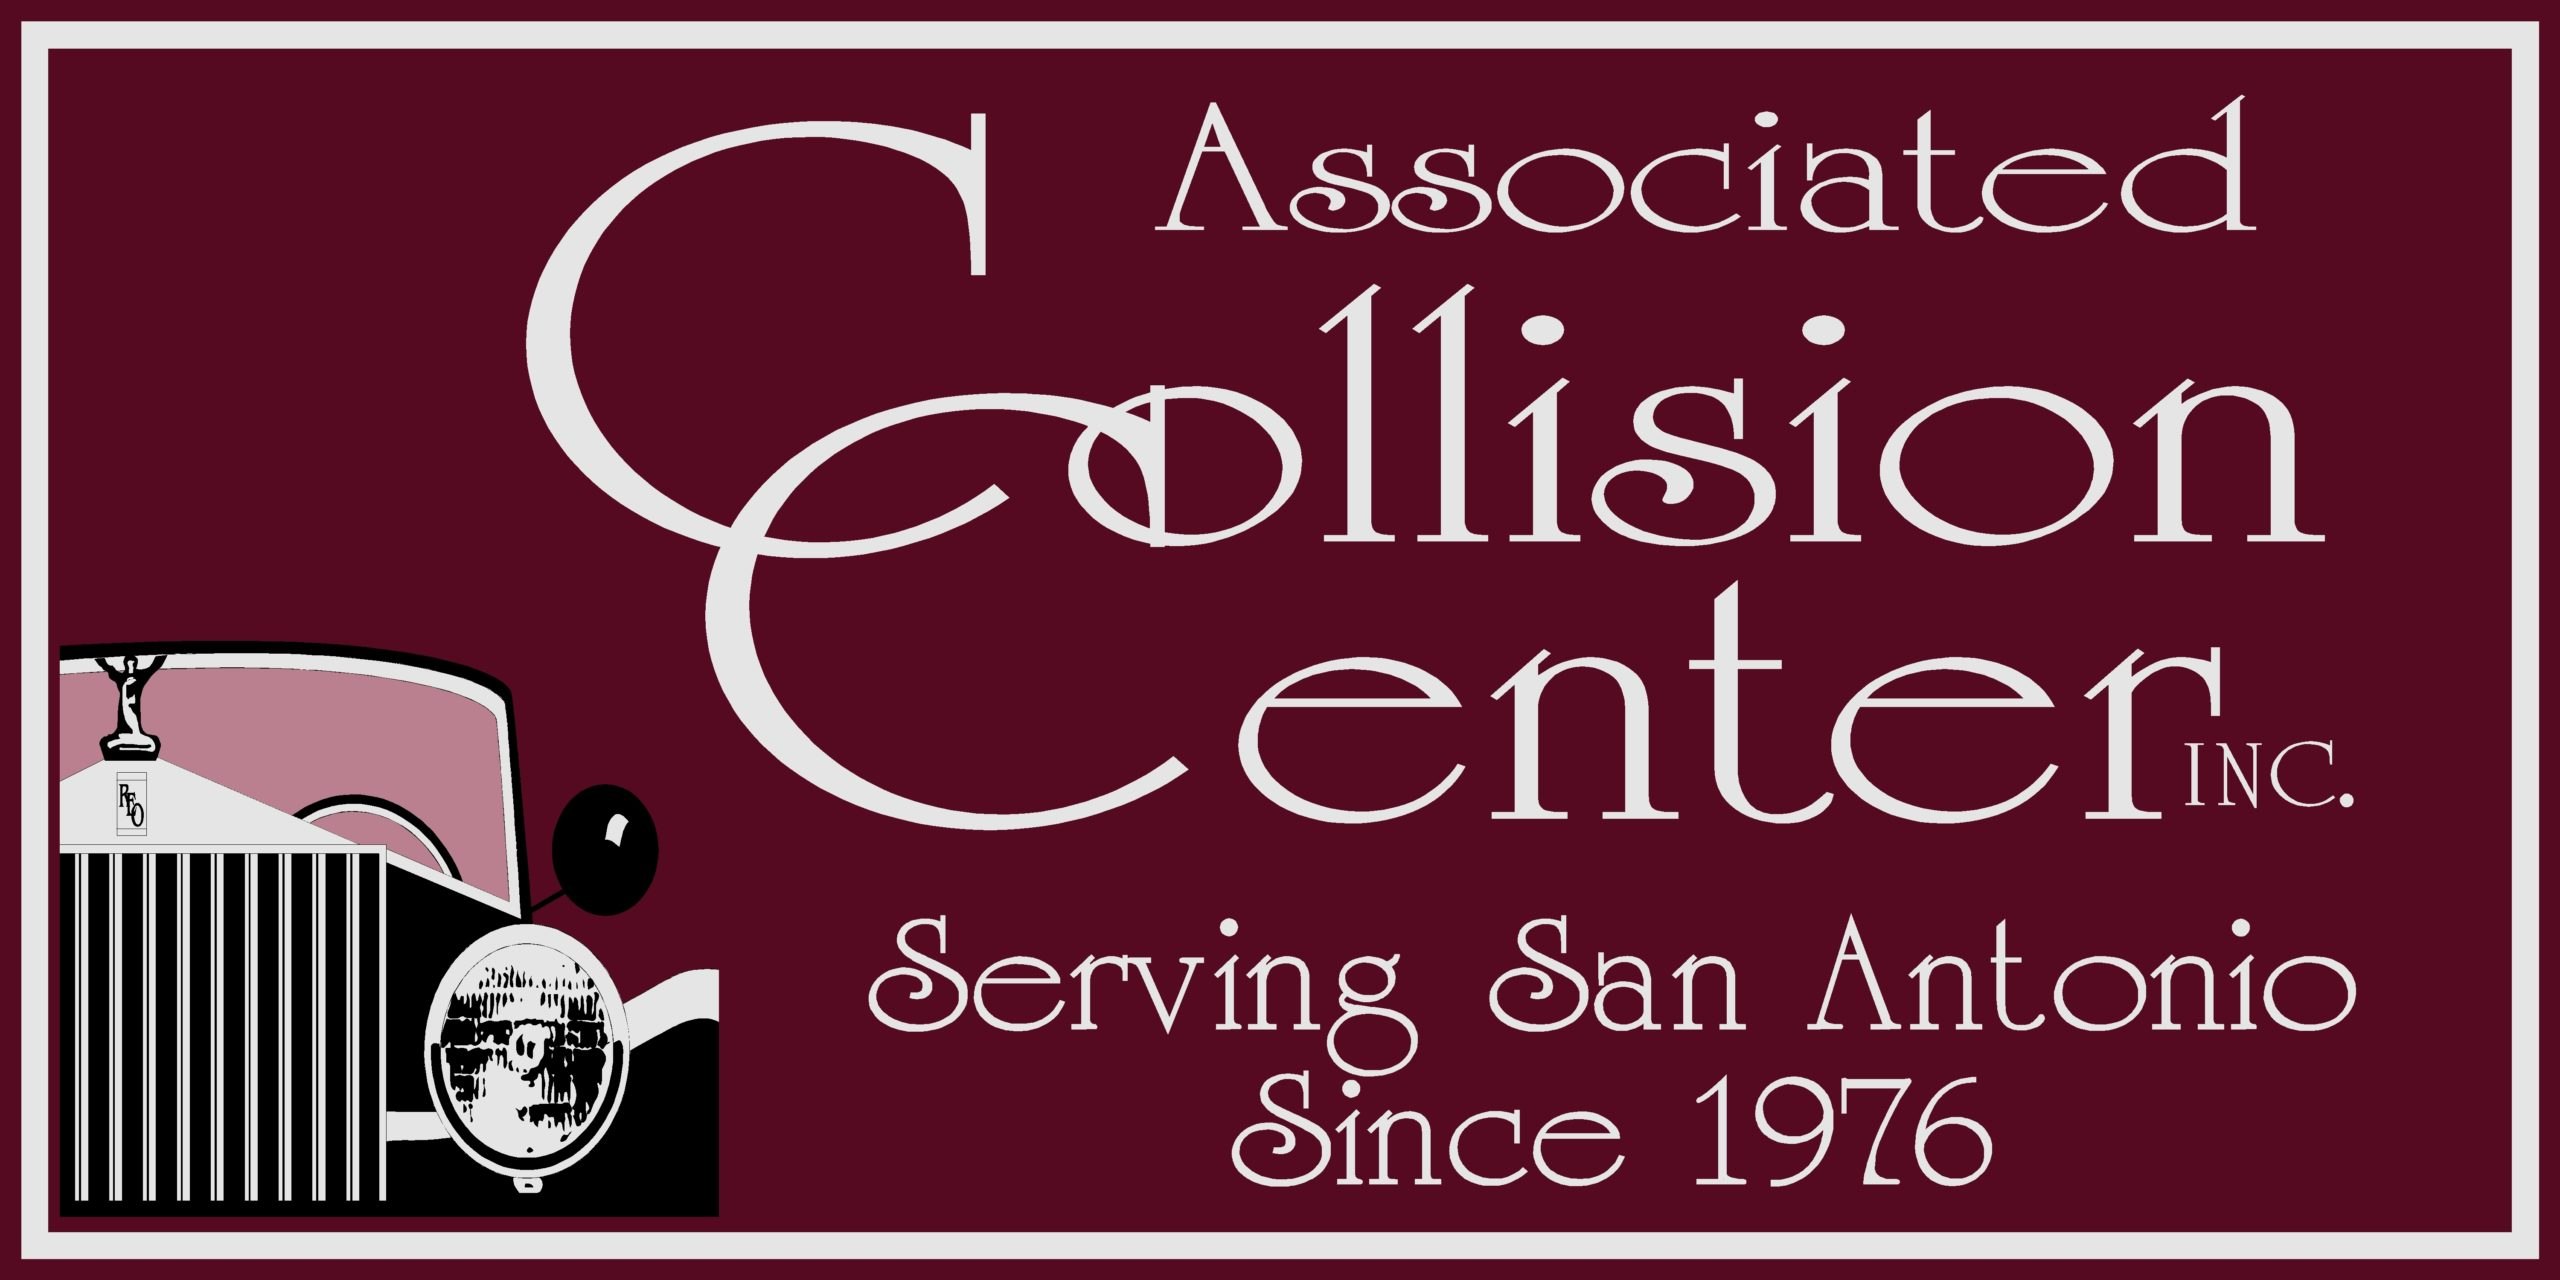 Associated Collision Center